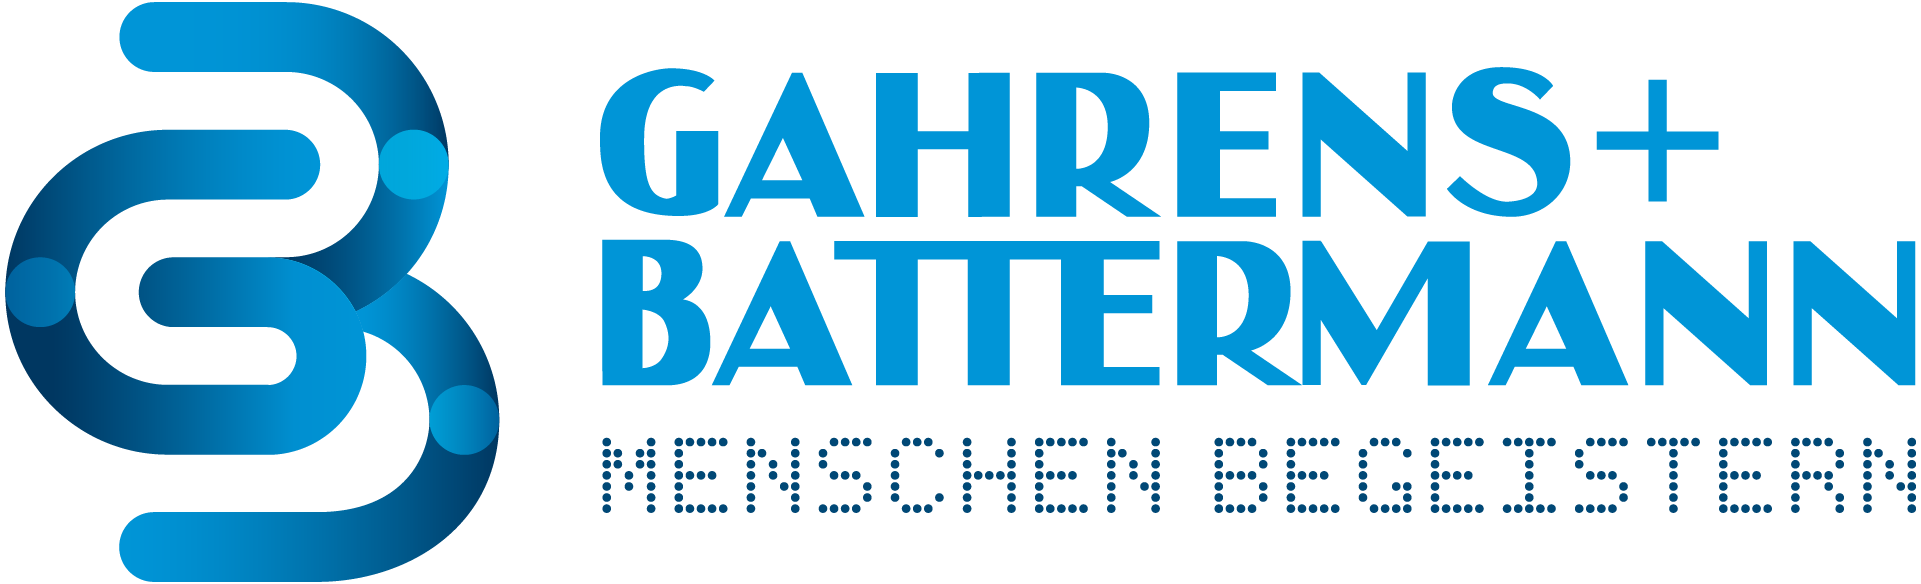 gahrens-battermann